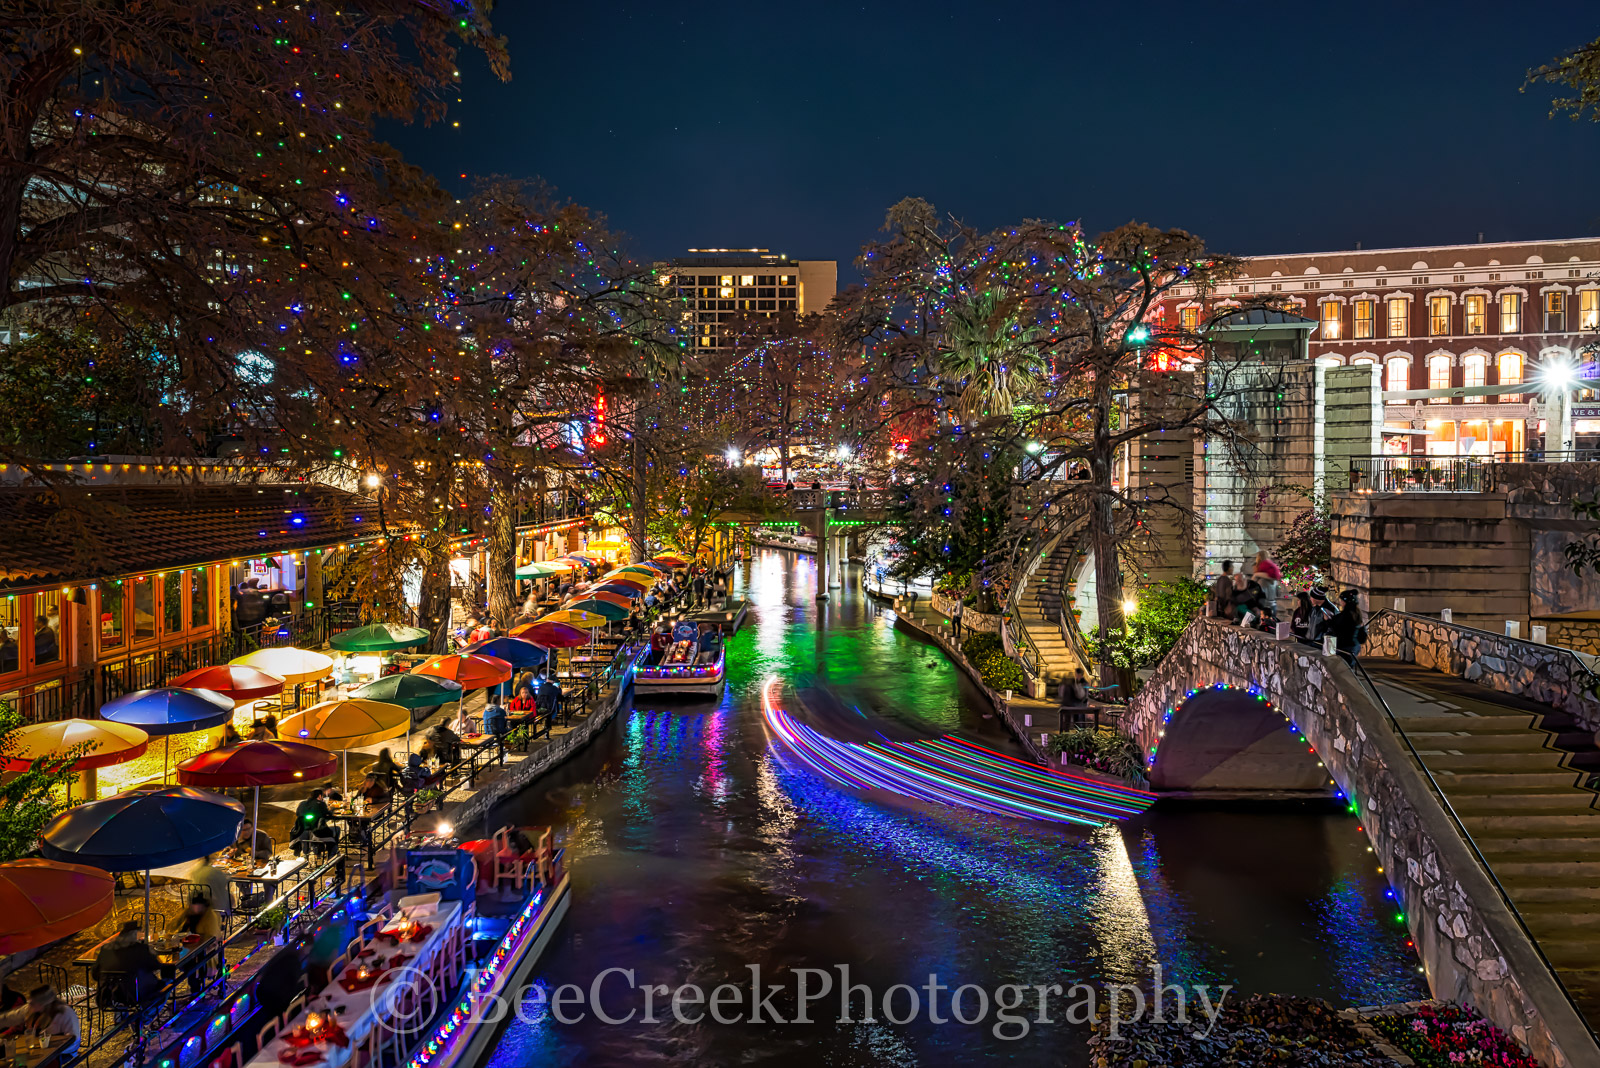 Christmas, Light Trails, Riverwalk, San Antonio, blue, boats, cityscape, cityscapes, colorful, decorations, festive, green, holiday, lights, red, photo